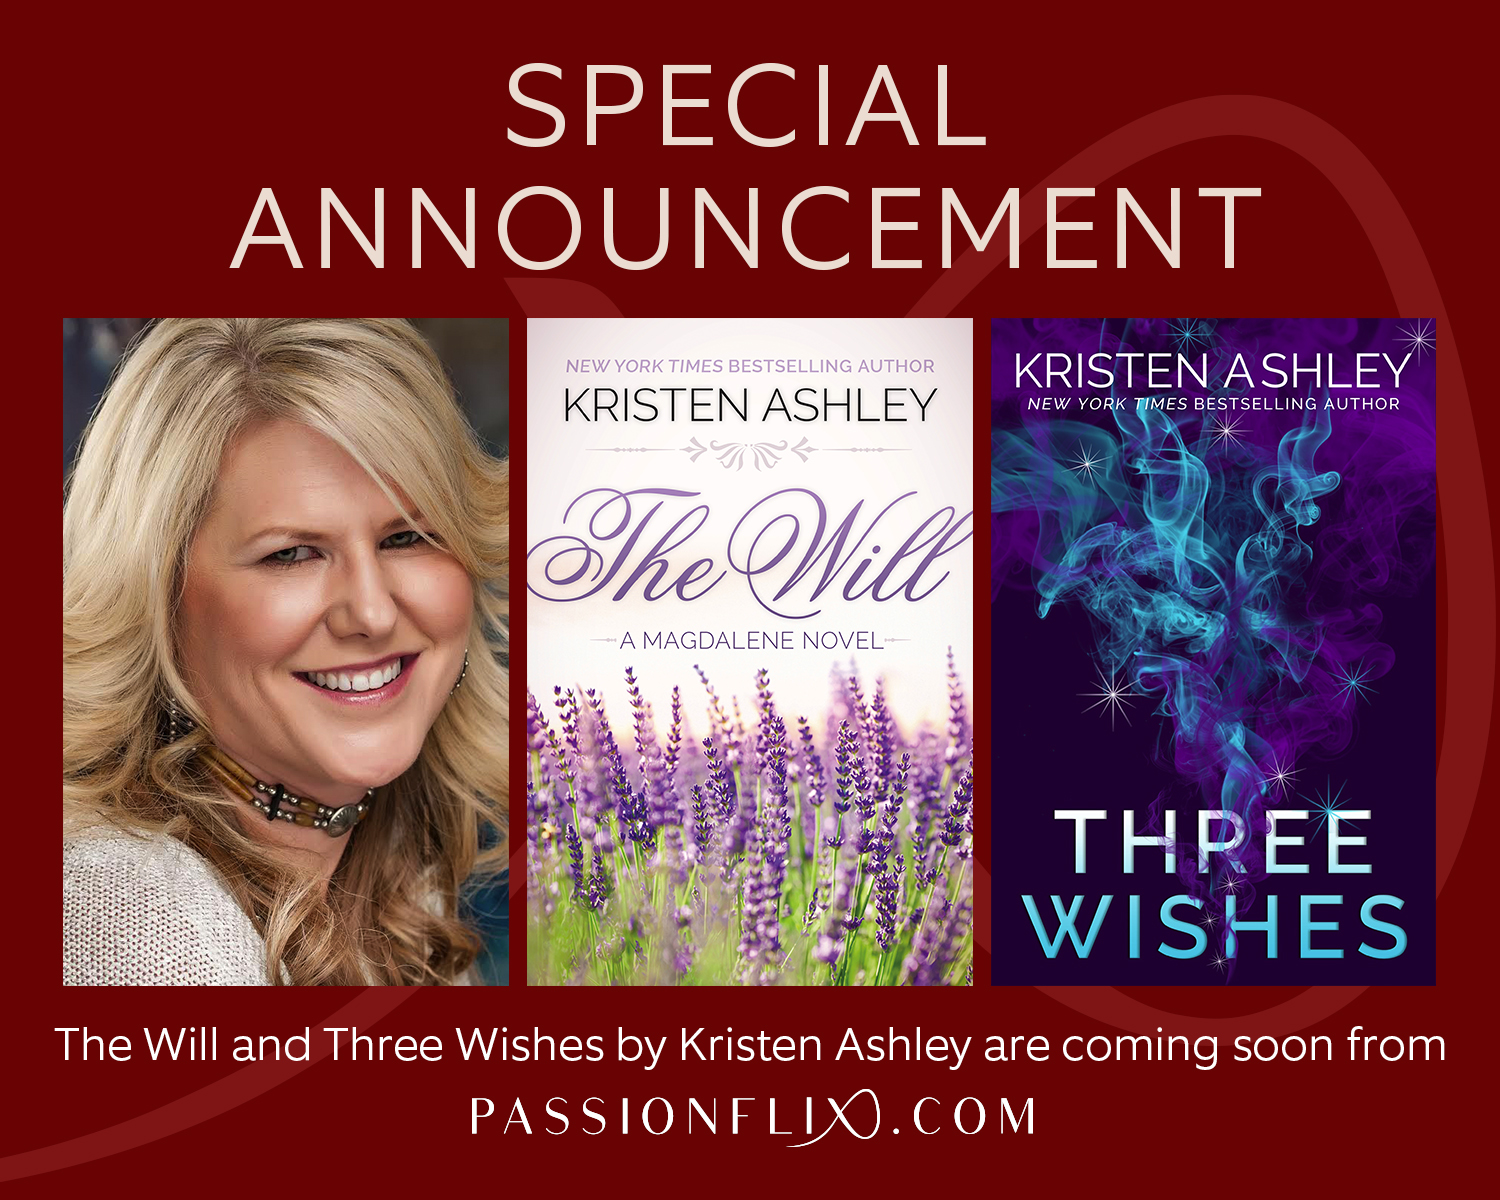 PassionFlix and Kristen Ashley Announcement, The Will and Three Whishes